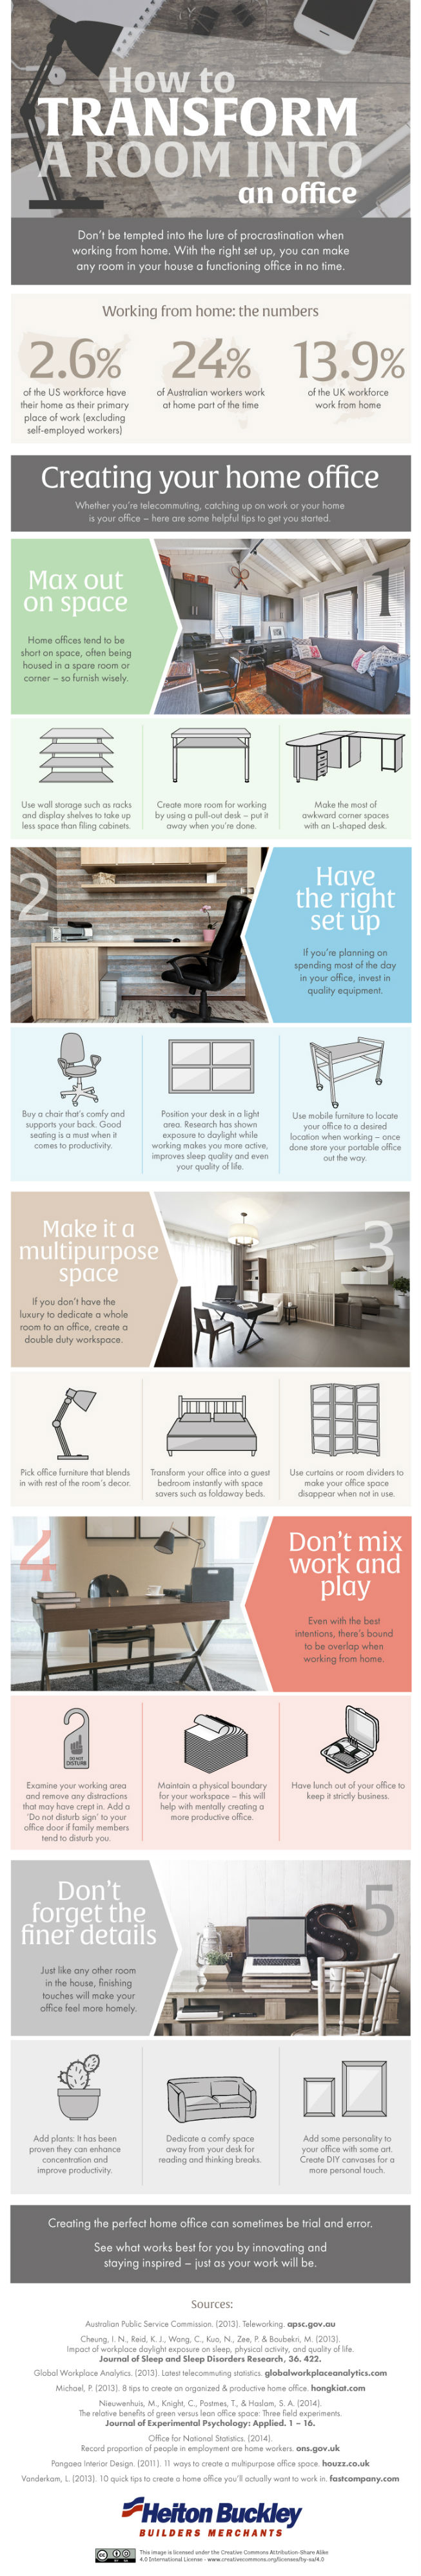 How To Transform a Room Into an Office [Infographic]